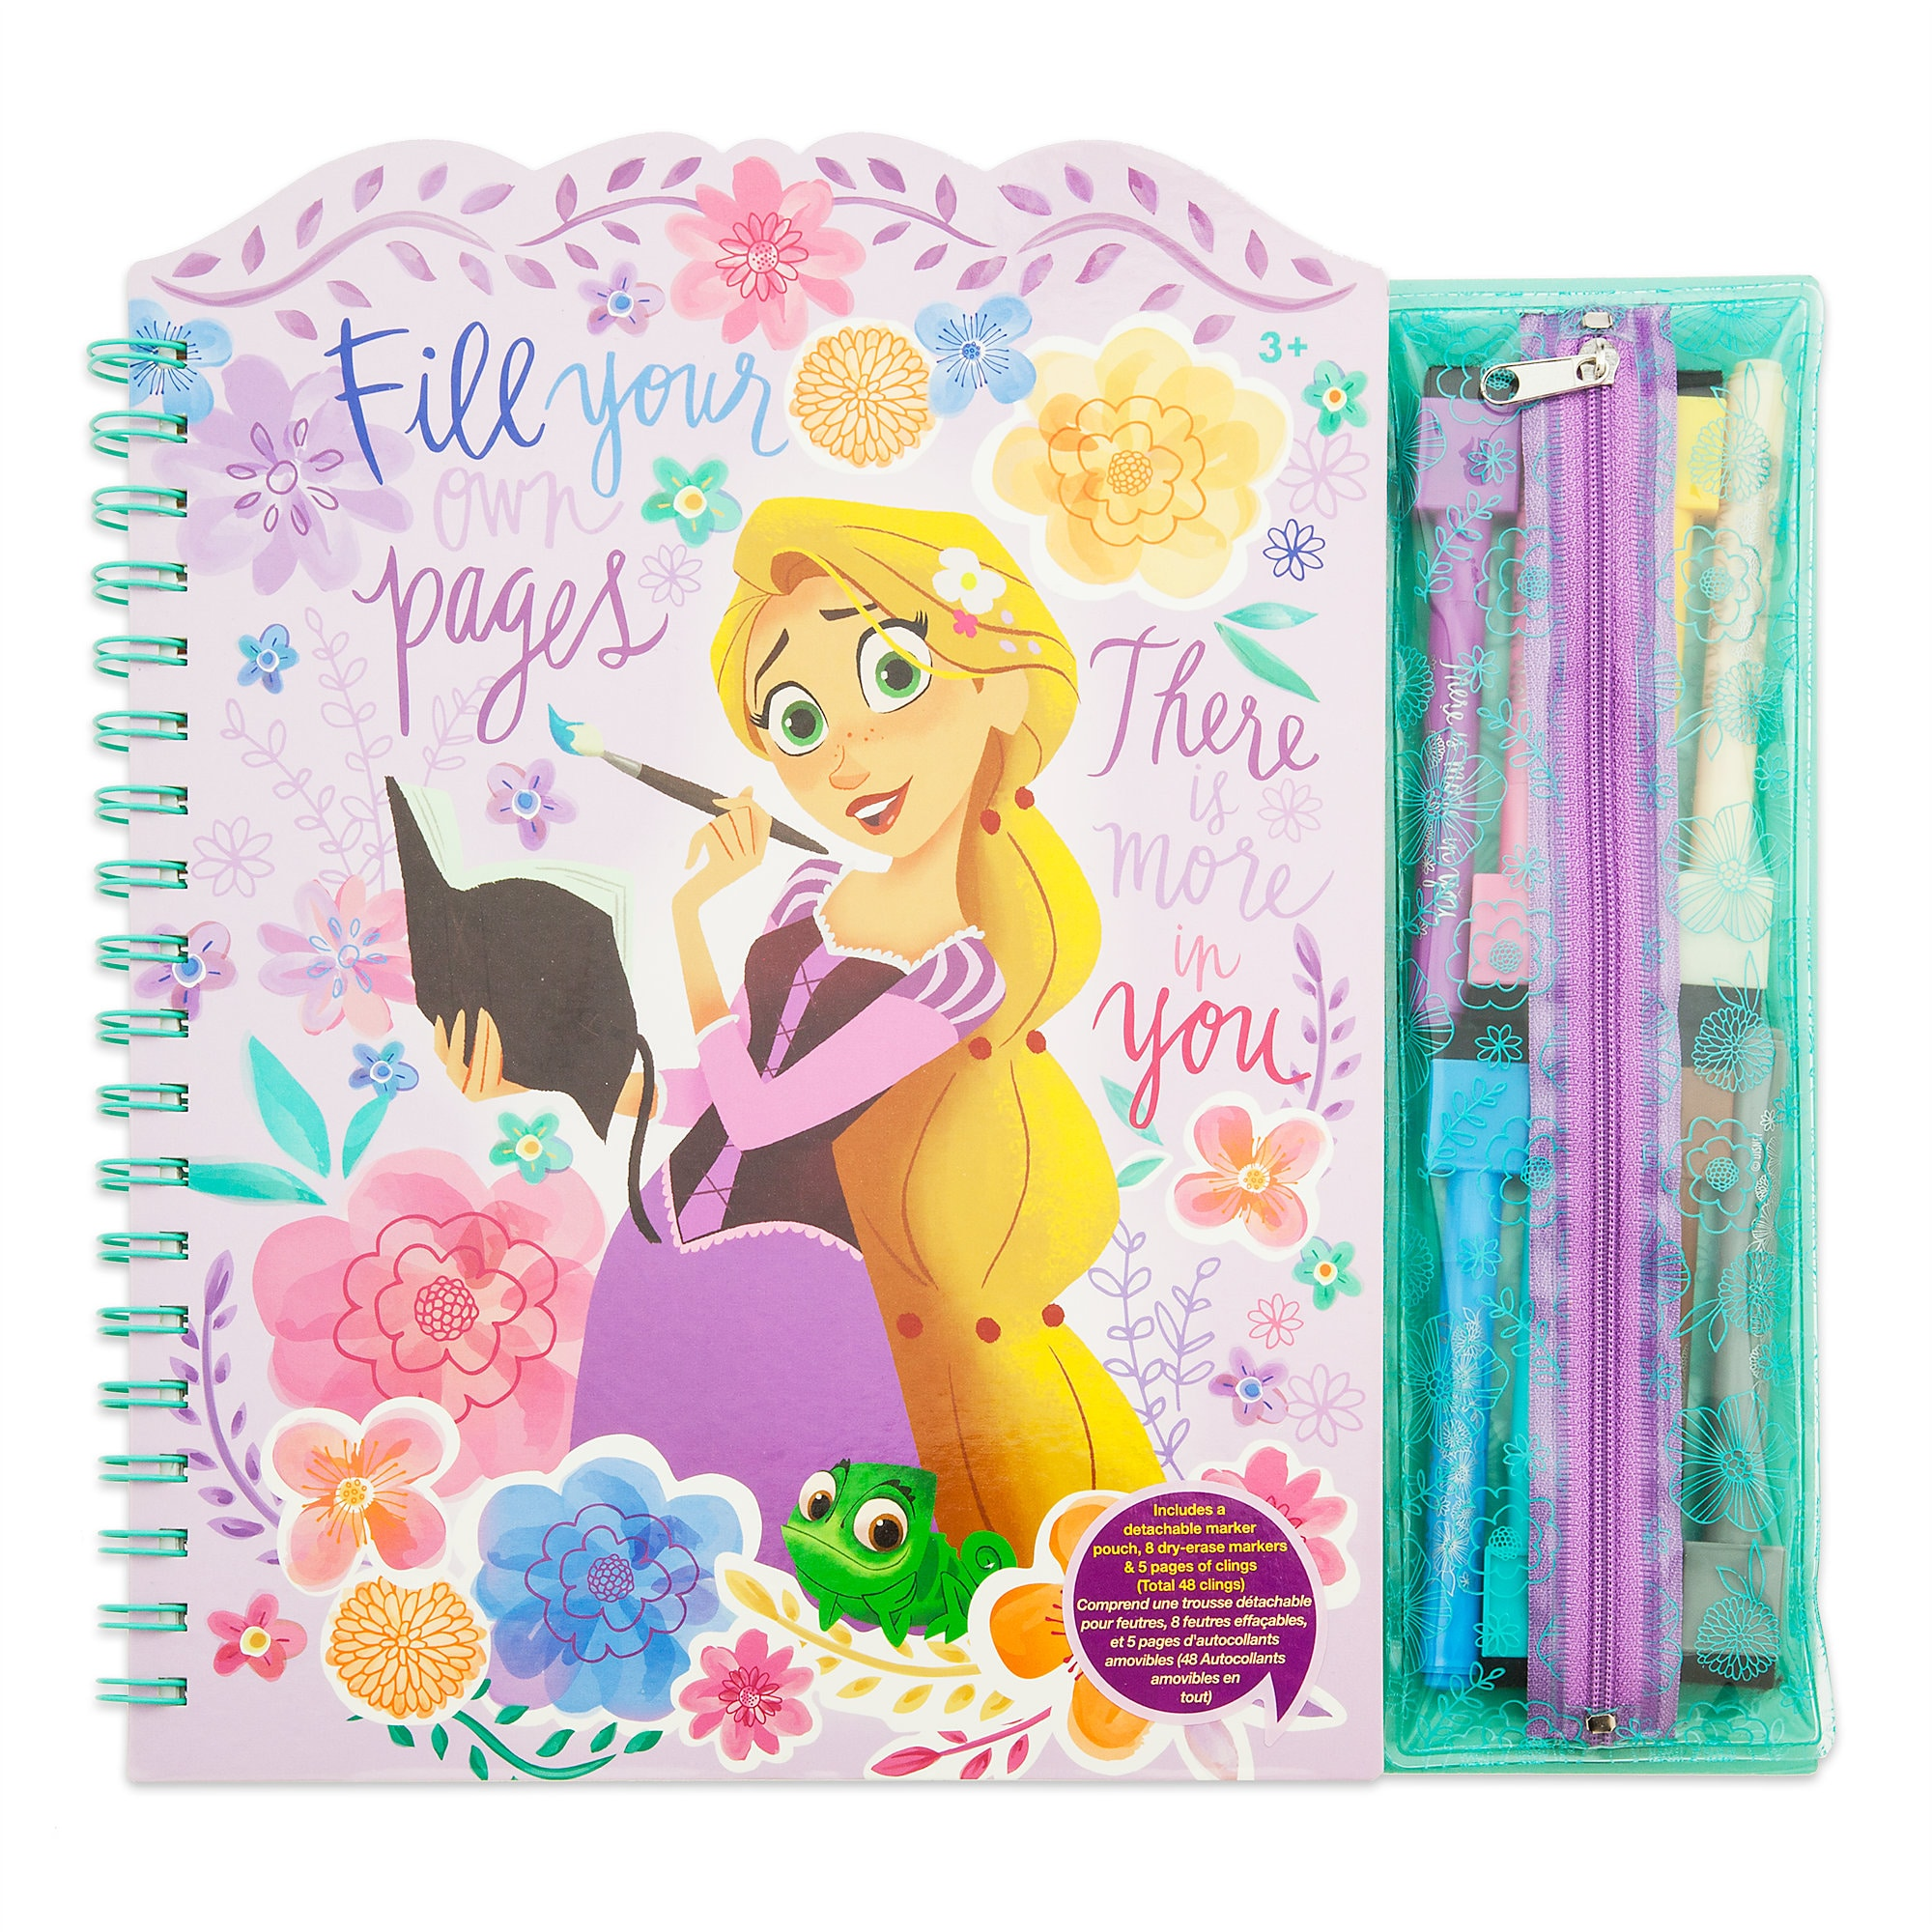 Rapunzel Arts & Crafts Story Book Set - Tangled: The Series